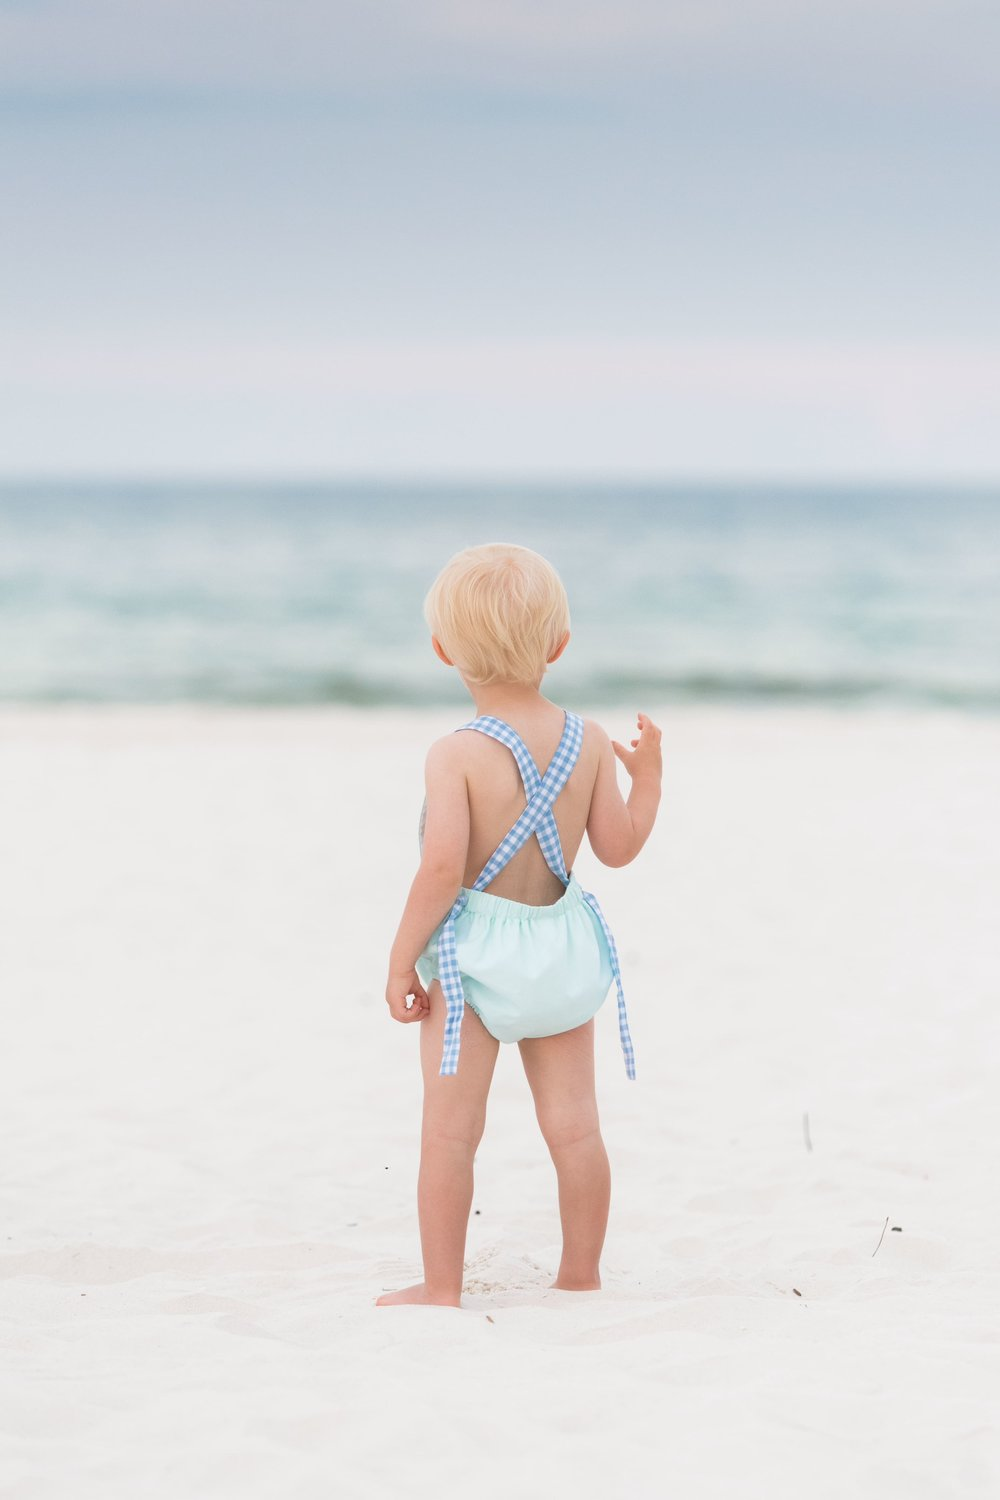 pensacola beach photographer captures a young toddler on the beach